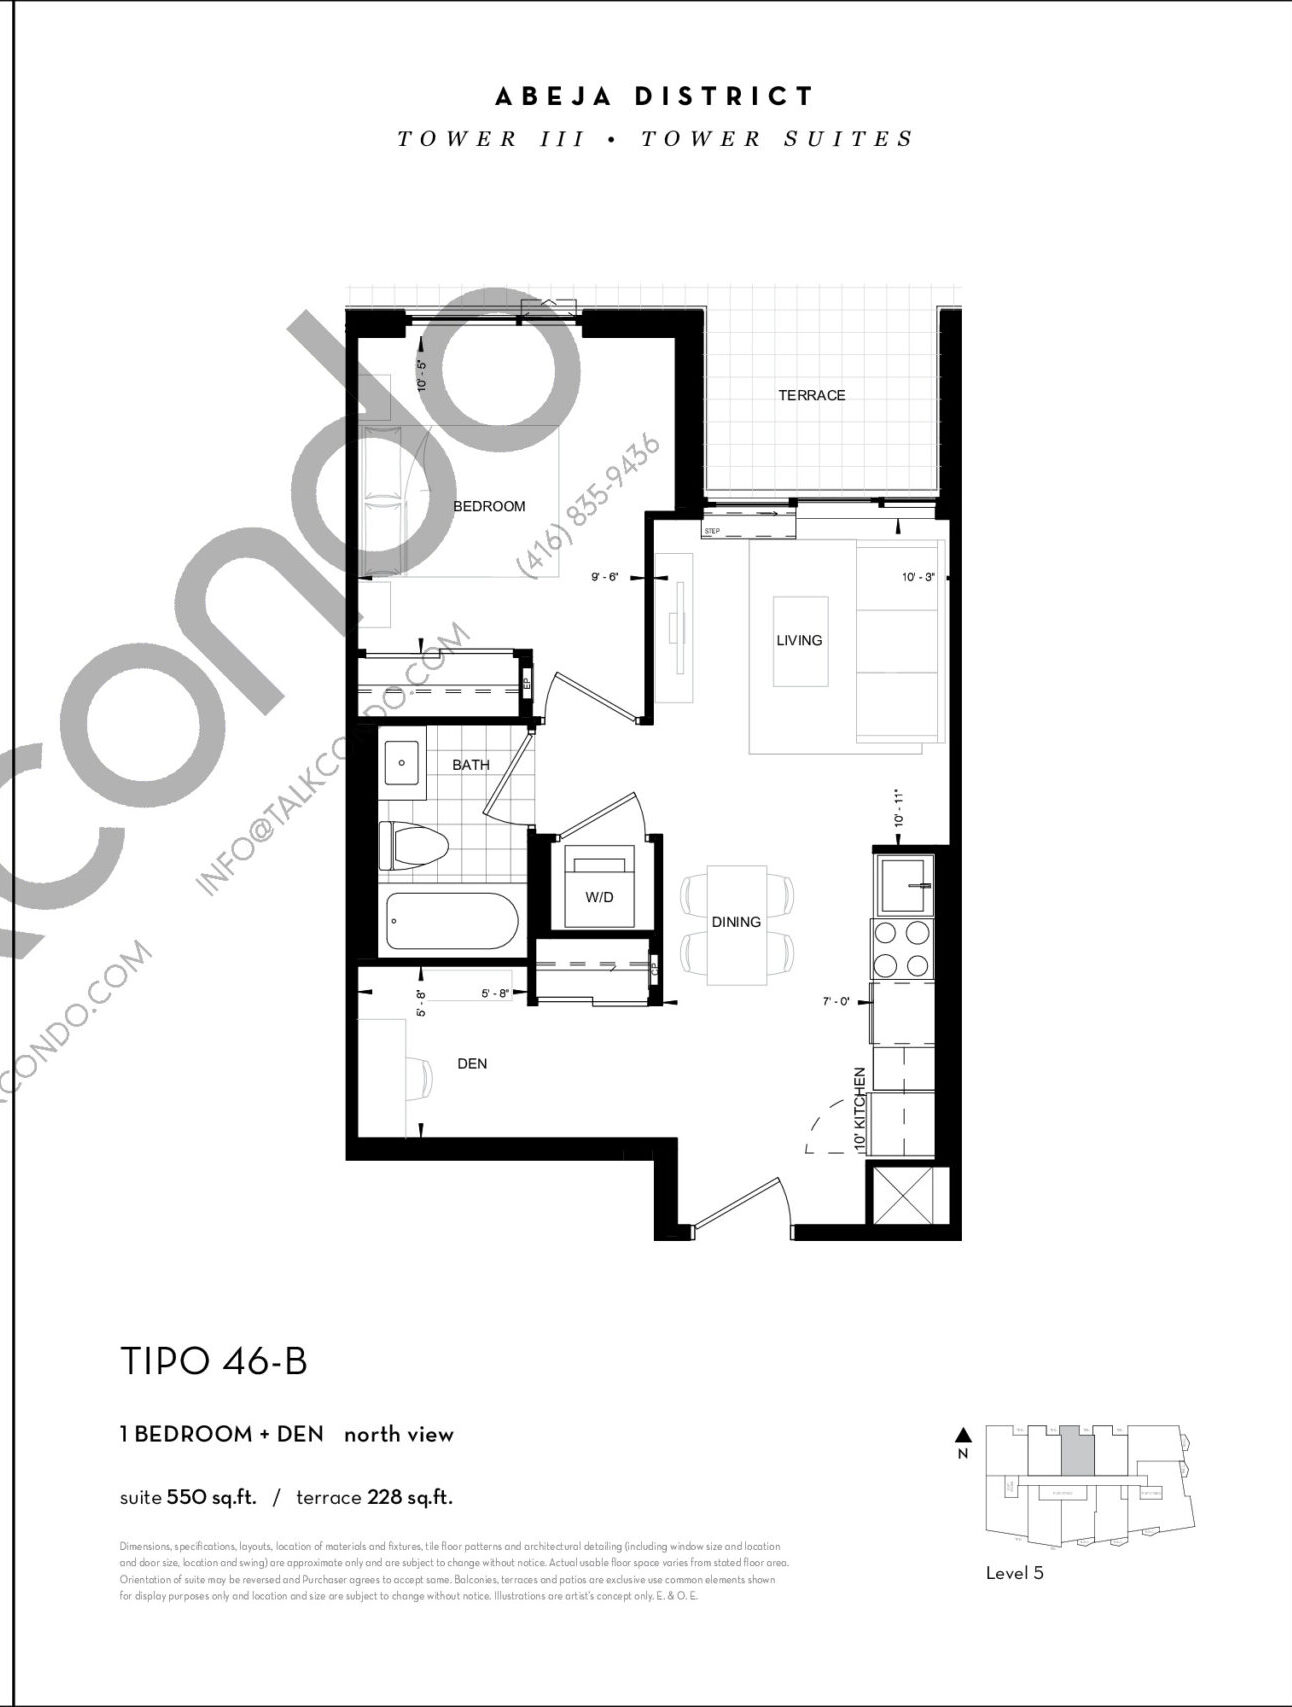 TIPO 46-B Floor Plan at Abeja District Condos Tower 3 - 550 sq.ft